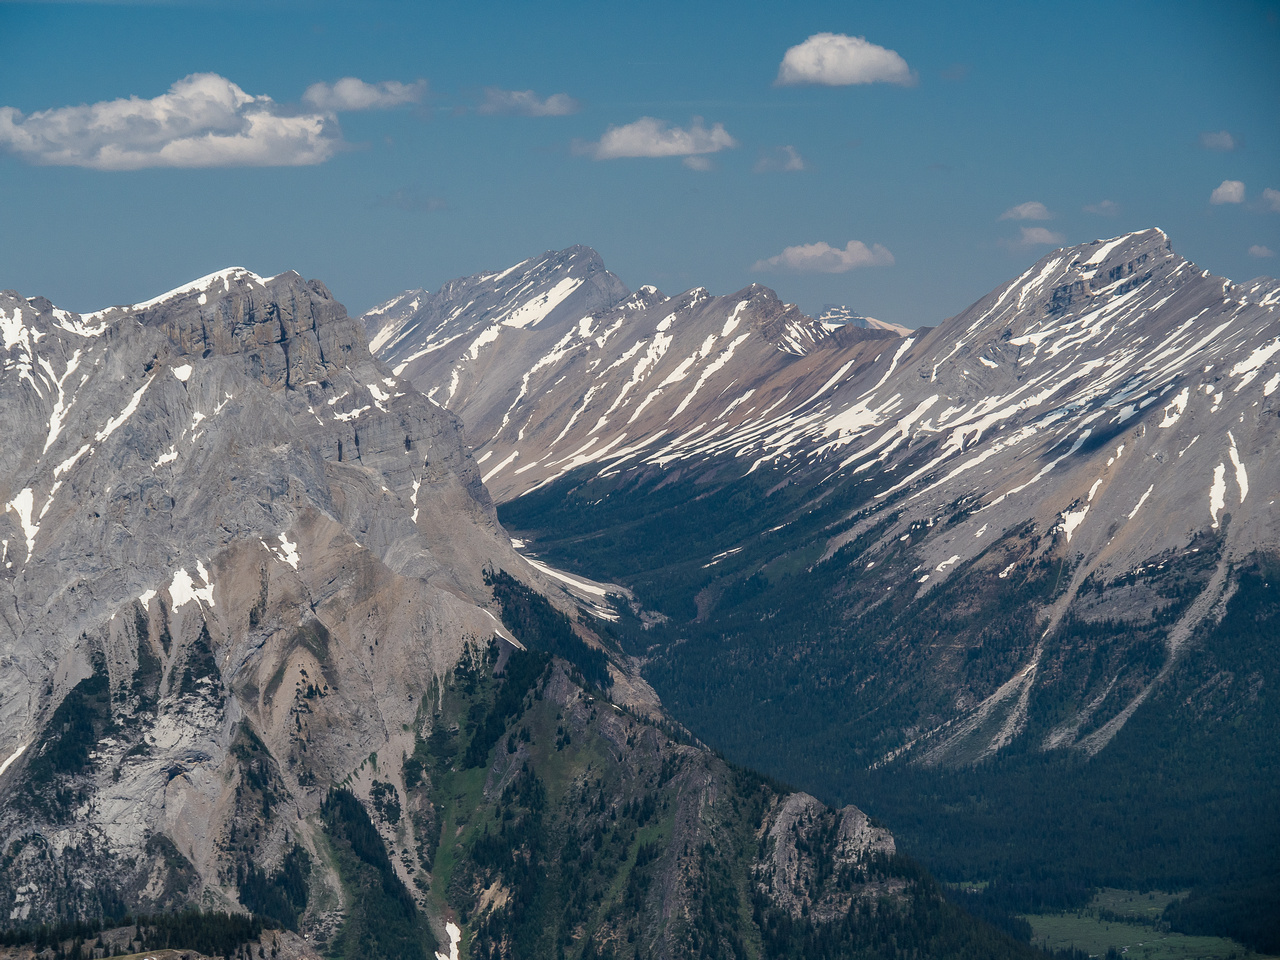 Looking past Cave Mountain and Mount Cautley on the left, up Assiniboine Pass with Og Mountain and Naswald in the distance.